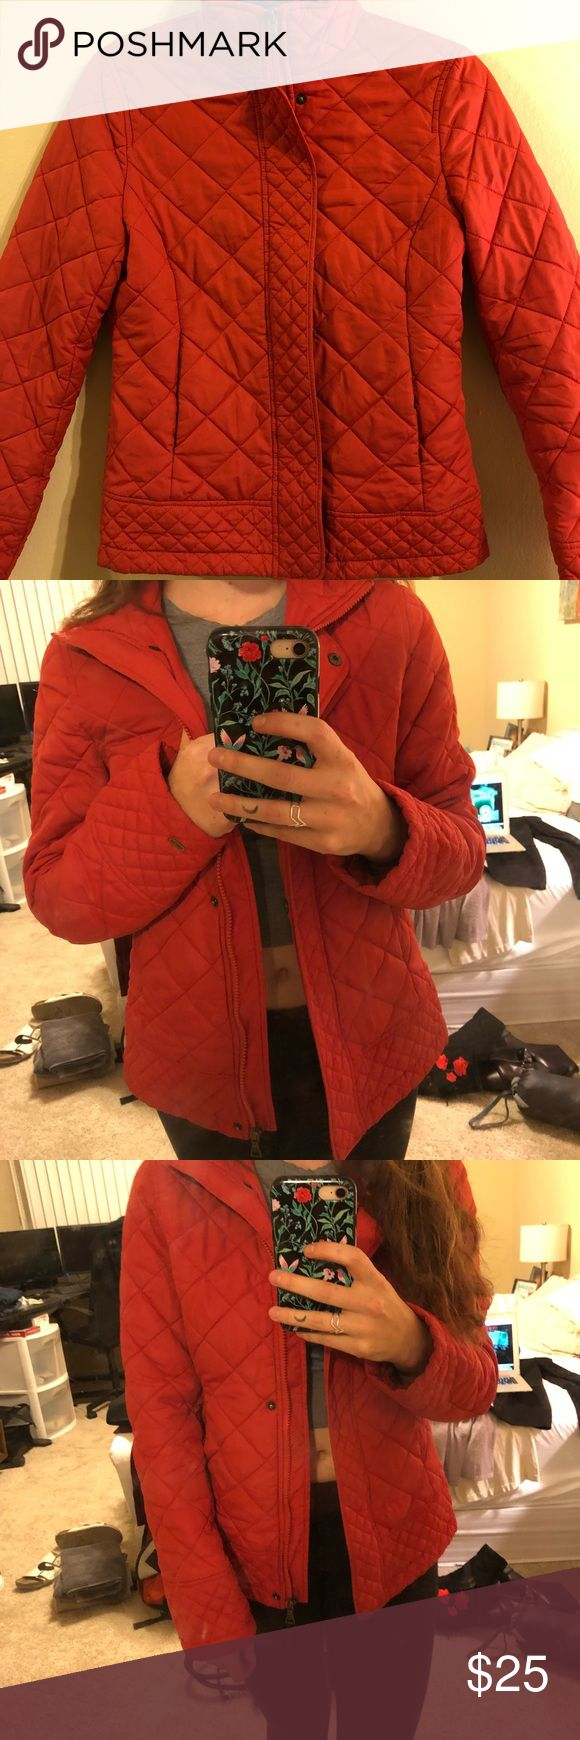 Tommy Hilfiger blood orange down jacket Very warm and comfortable Tommy Hilfiger quilted jacket. Blood orange color with little damage other than slight wear over the last year. It's very warm!! Tommy Hilfiger Jackets & Coats Puffers